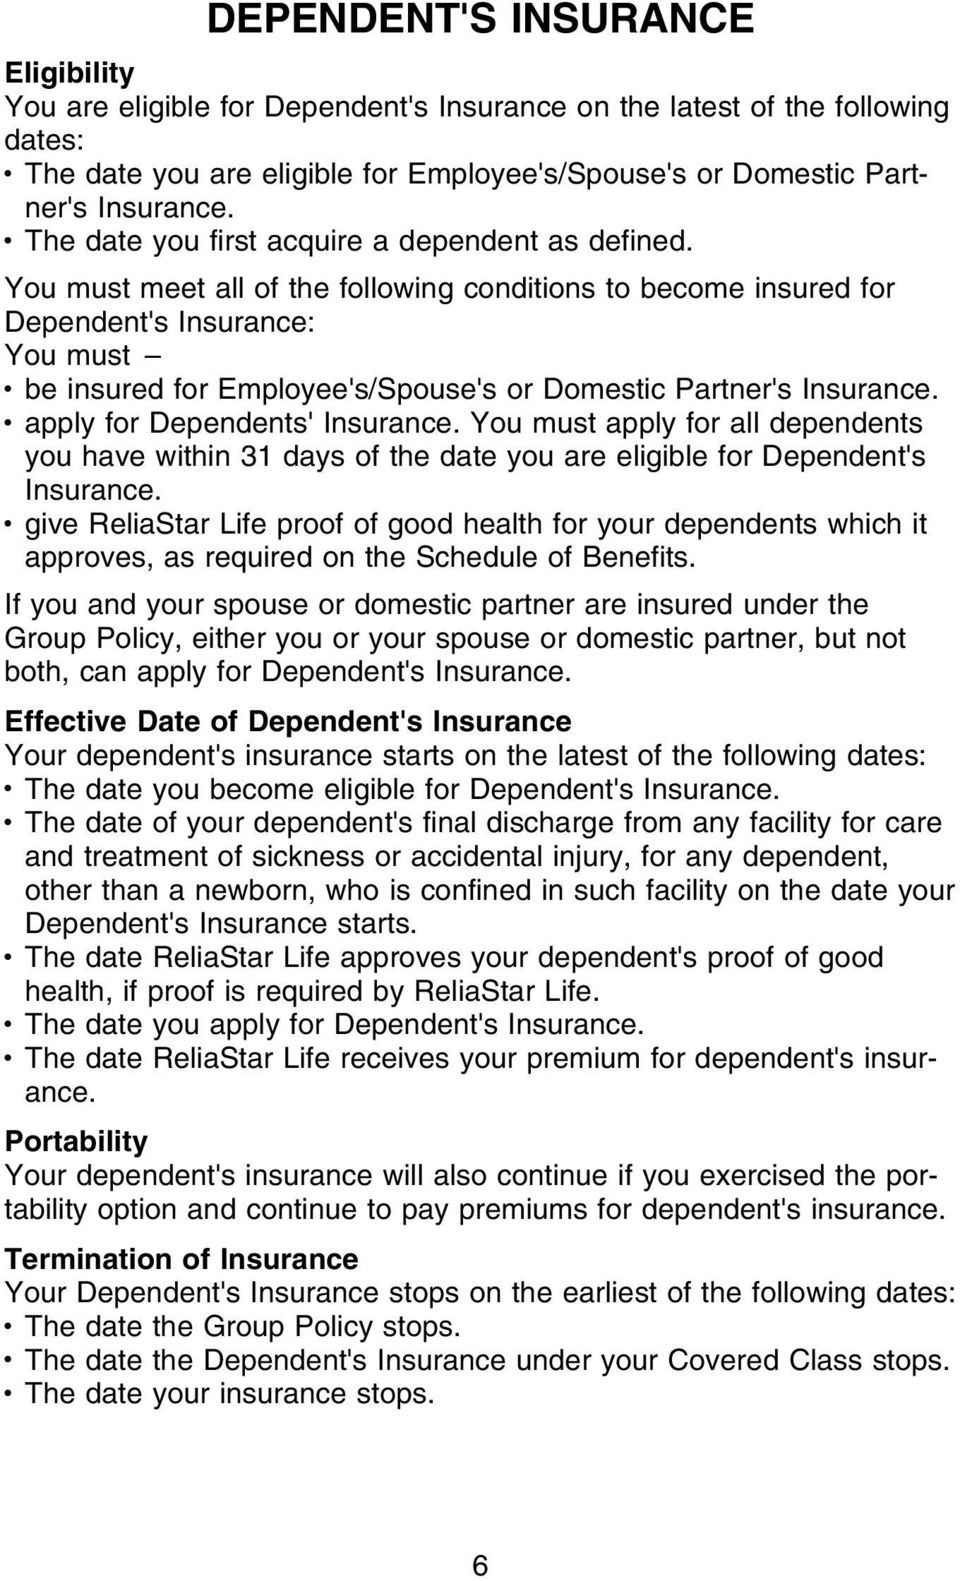 You must meet all of the following conditions to become insured for Dependent's Insurance: You must be insured for Employee's/Spouse's or Domestic Partner's Insurance. apply for Dependents' Insurance.